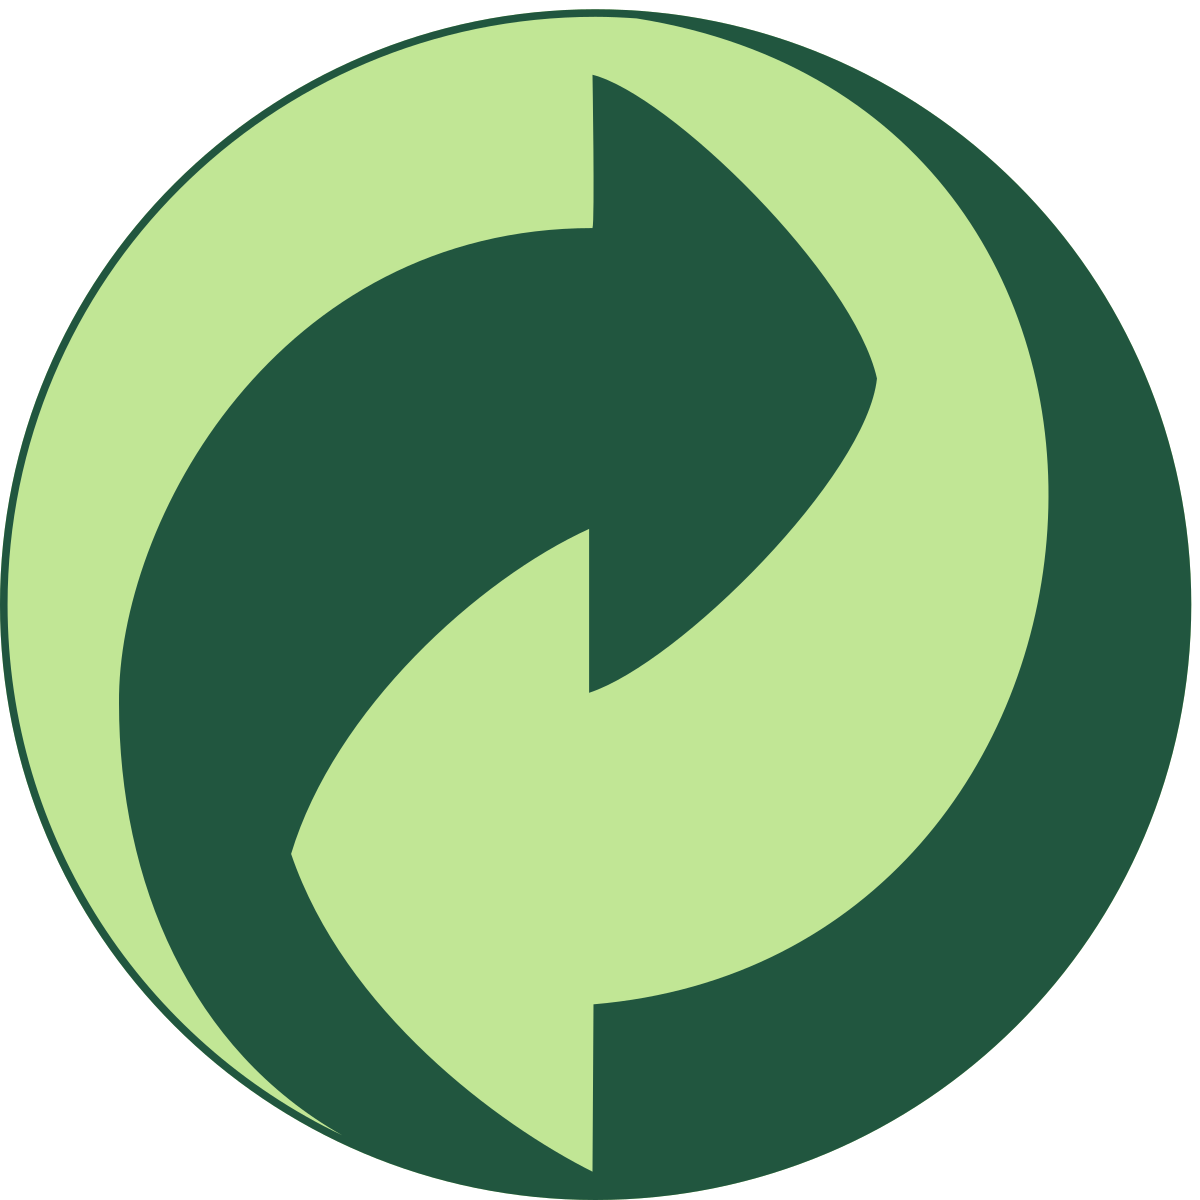 Green symbol images meaning. Trail clipart line dot